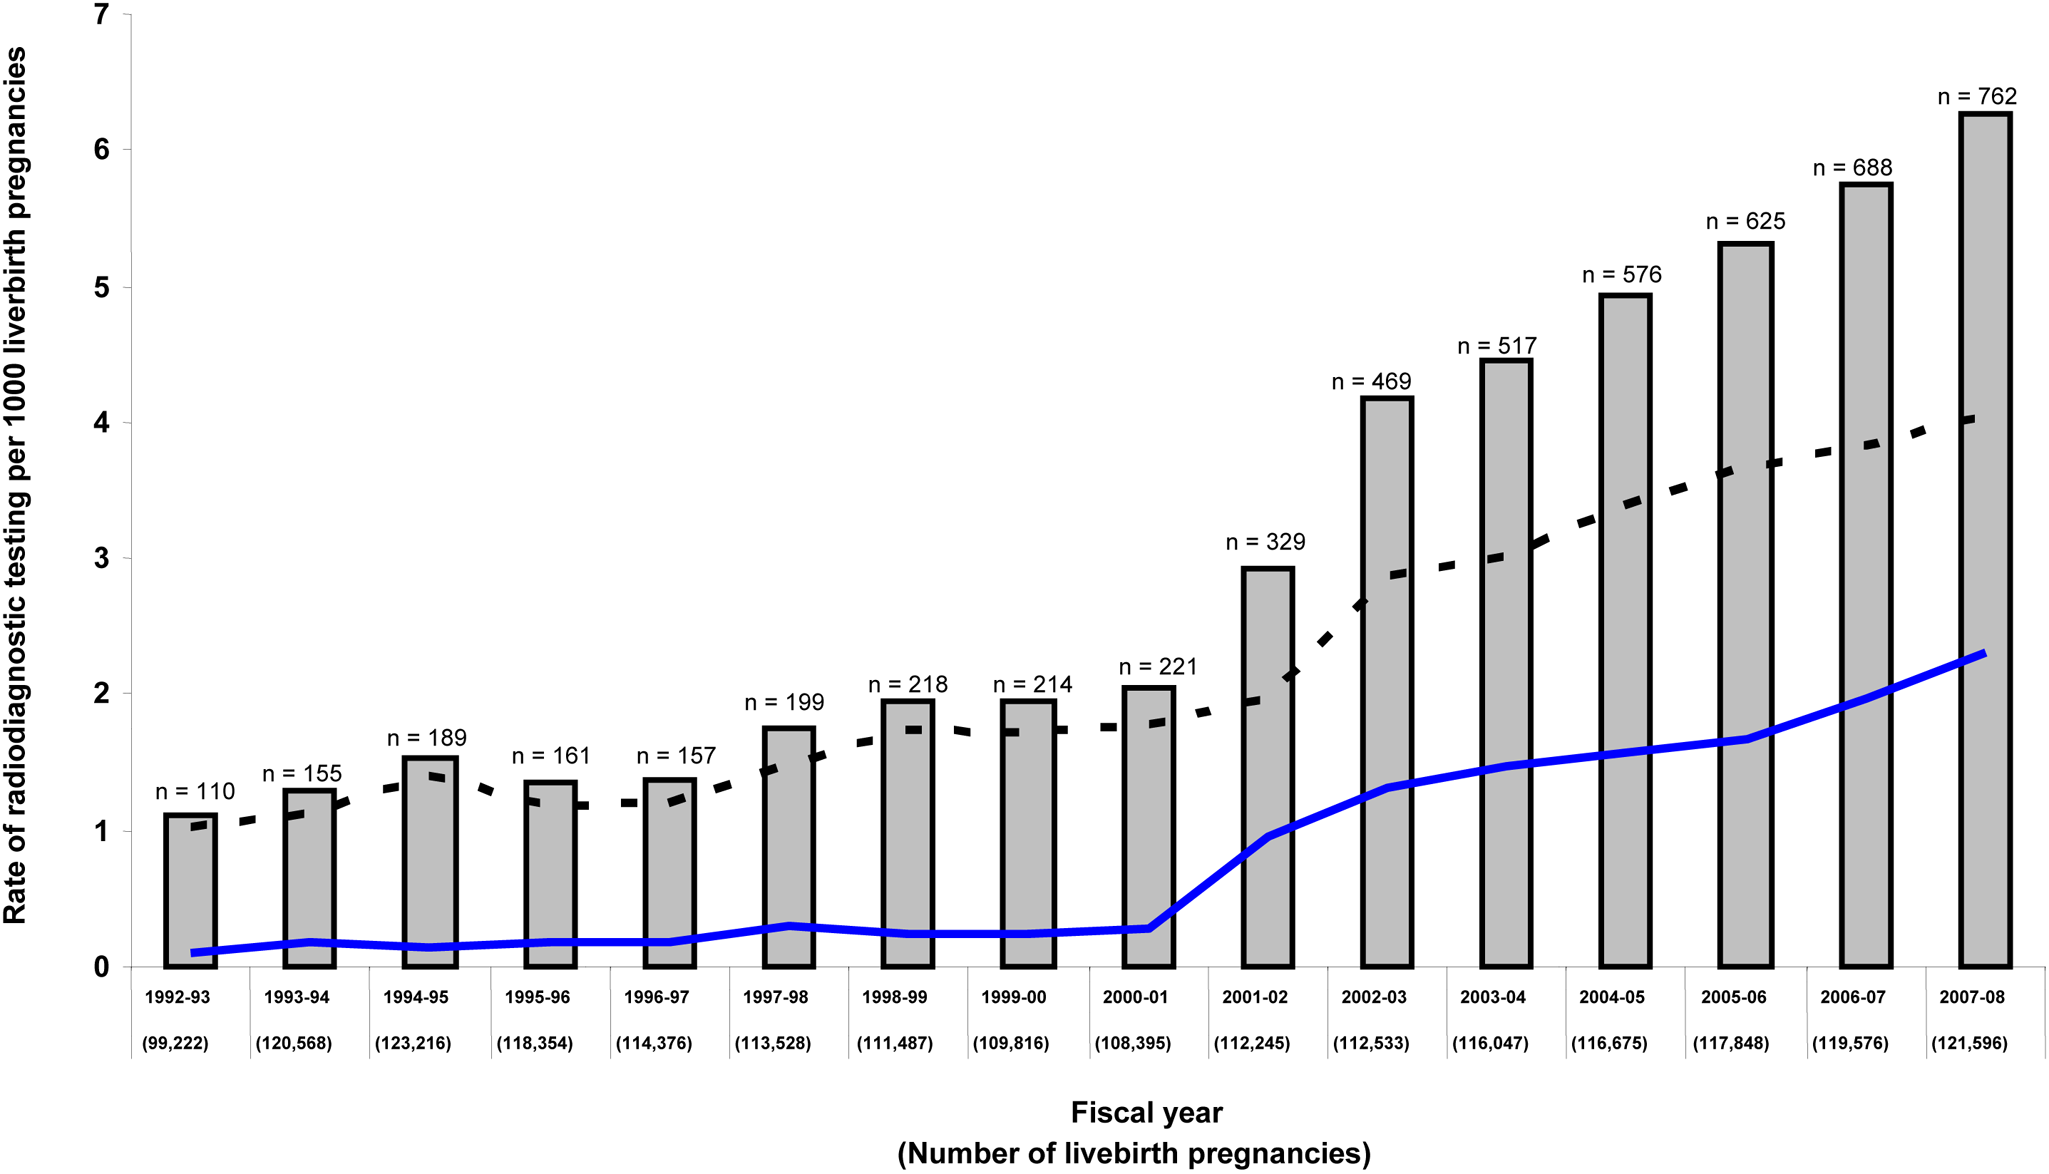 Annual rate of major radiodiagnostic testing in pregnancy in Ontario over time.